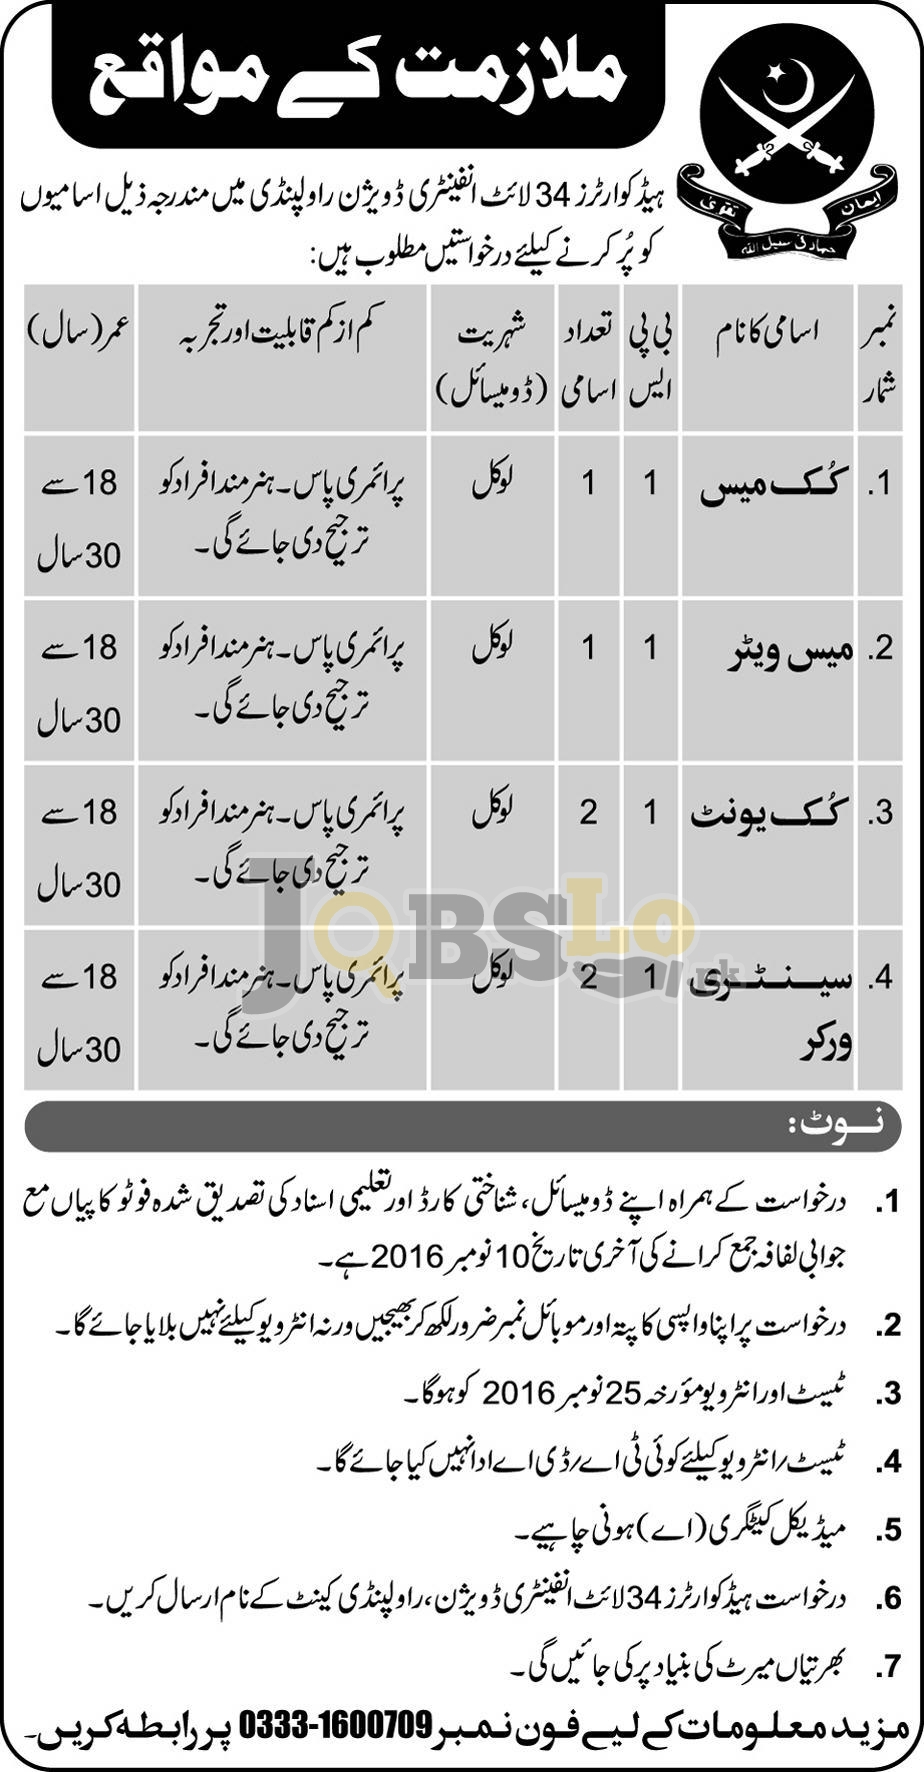 Headquarters 24 Light Infantry Division Rawalpindi Jobs